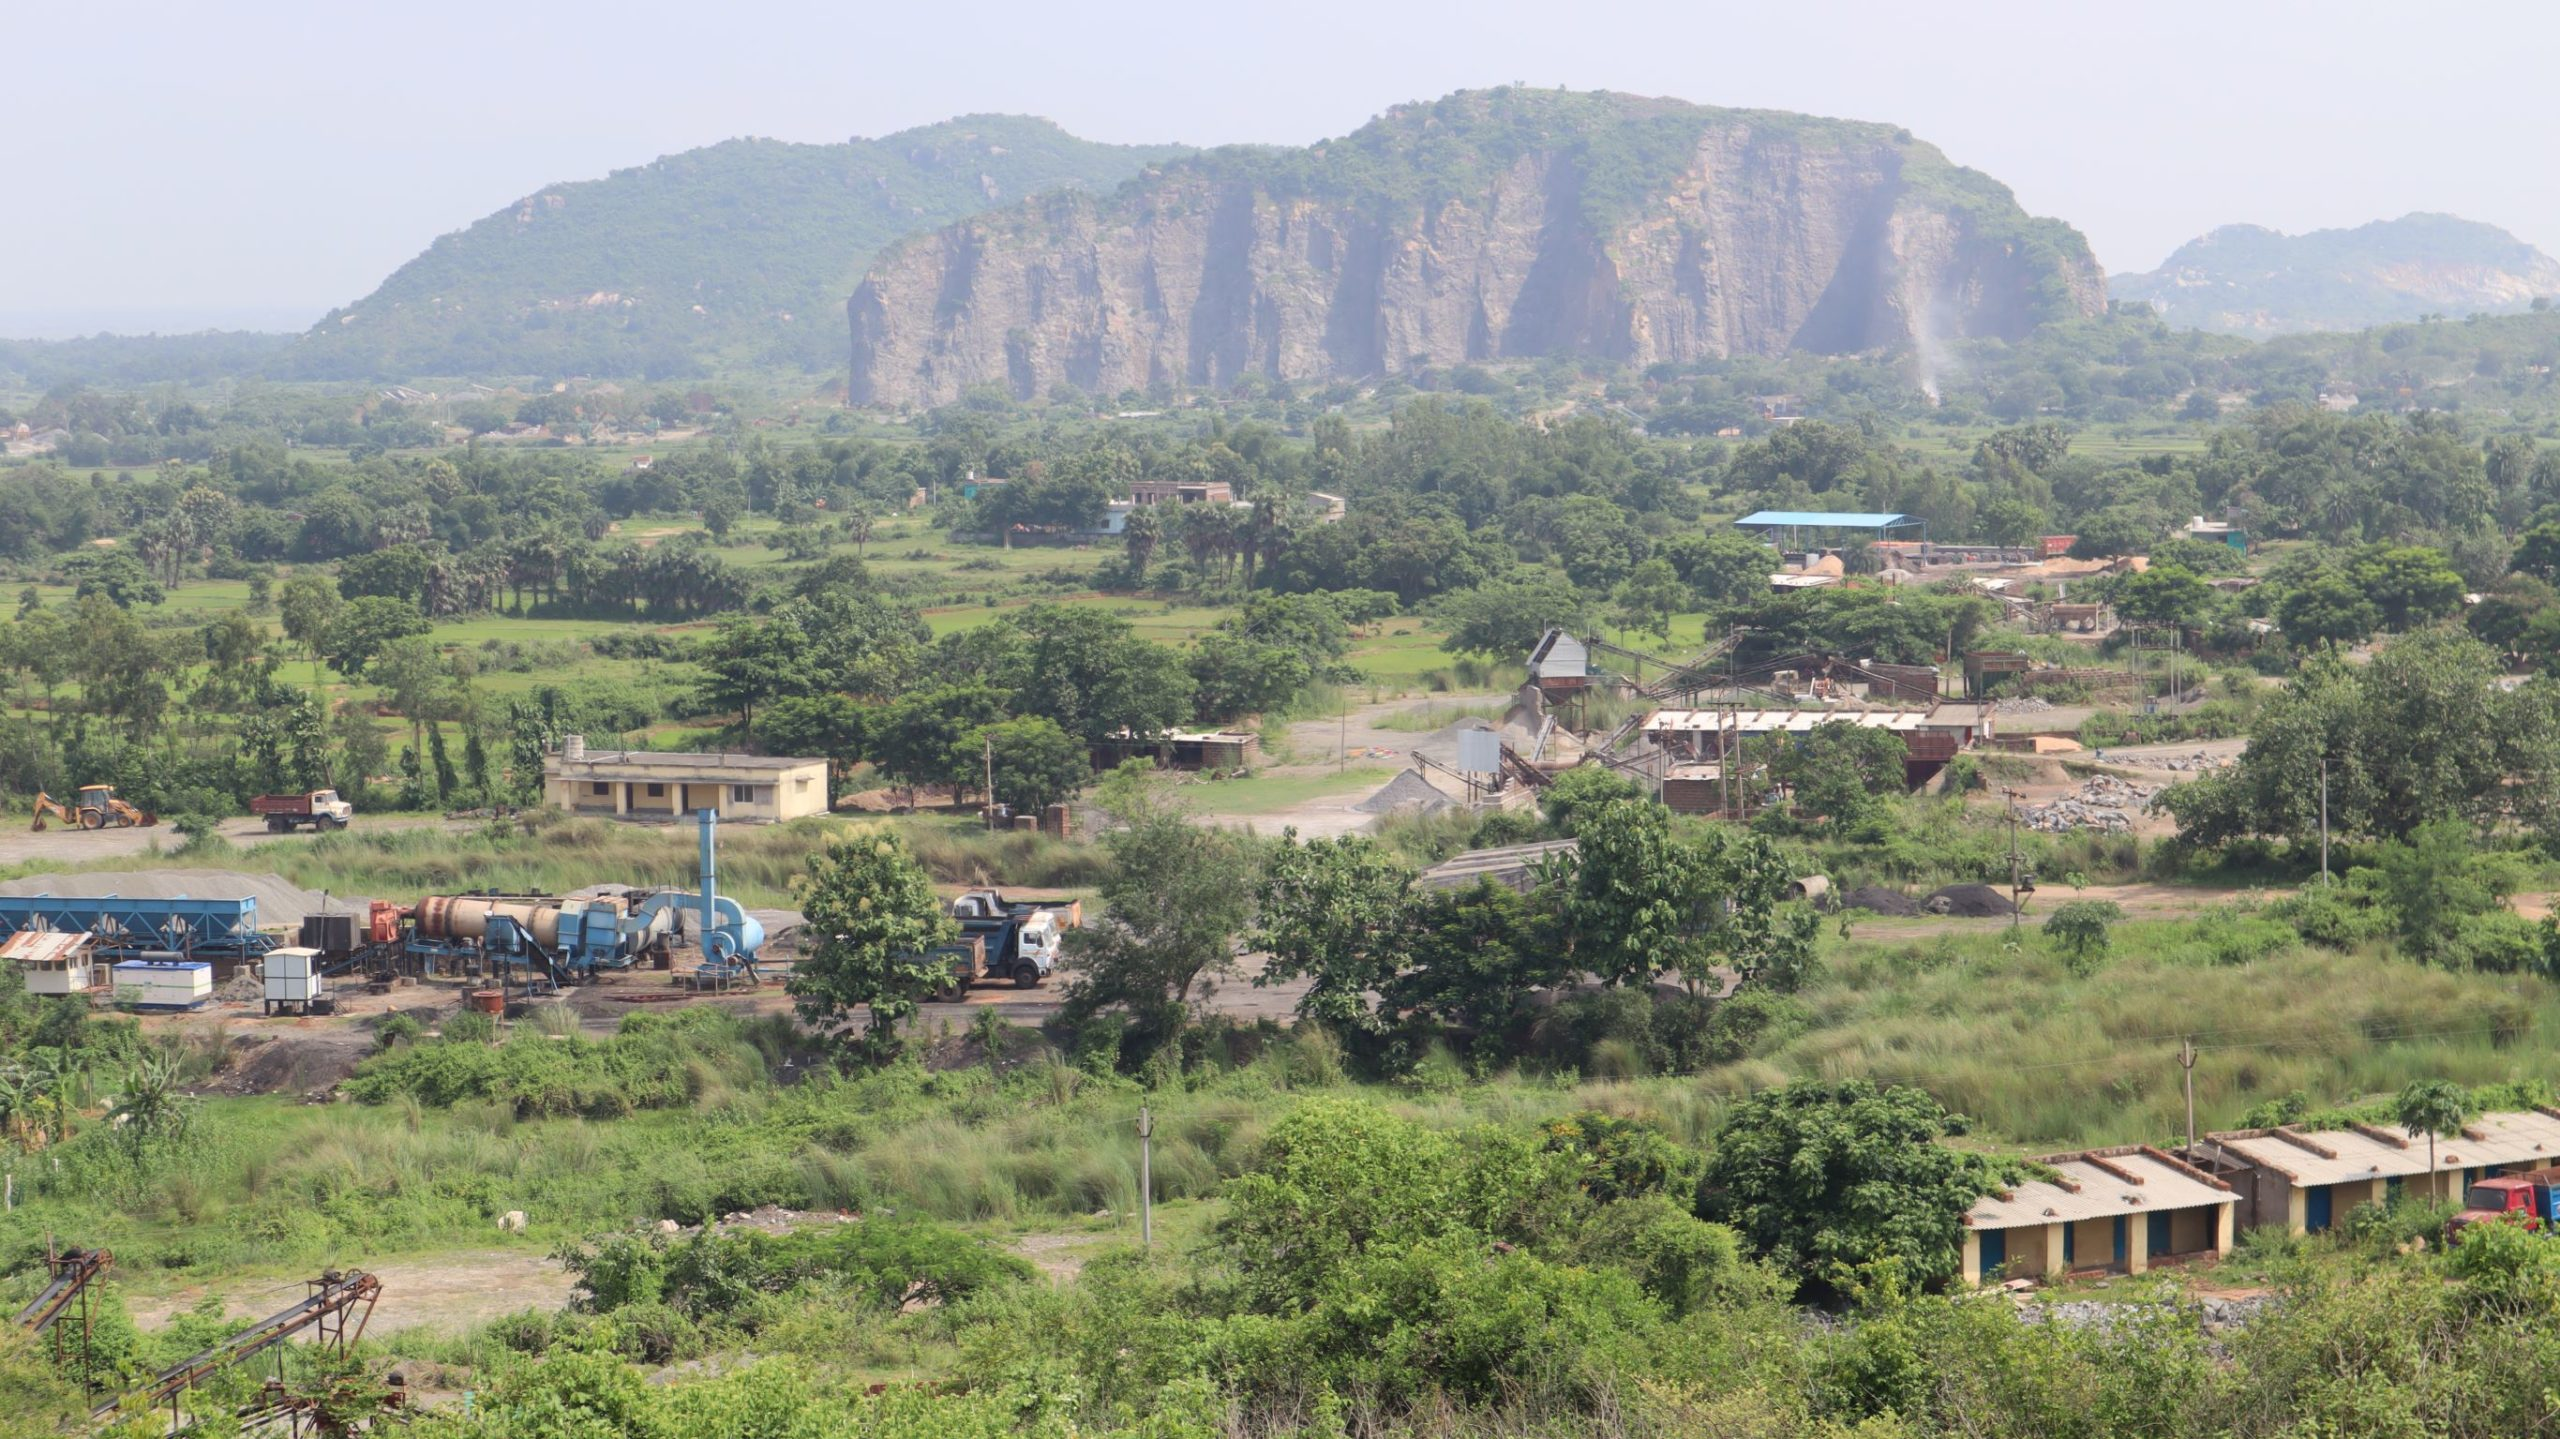 A vantage view of a stripped hill with many stone crushing and other units in the region. Photo by Manish Kumar.